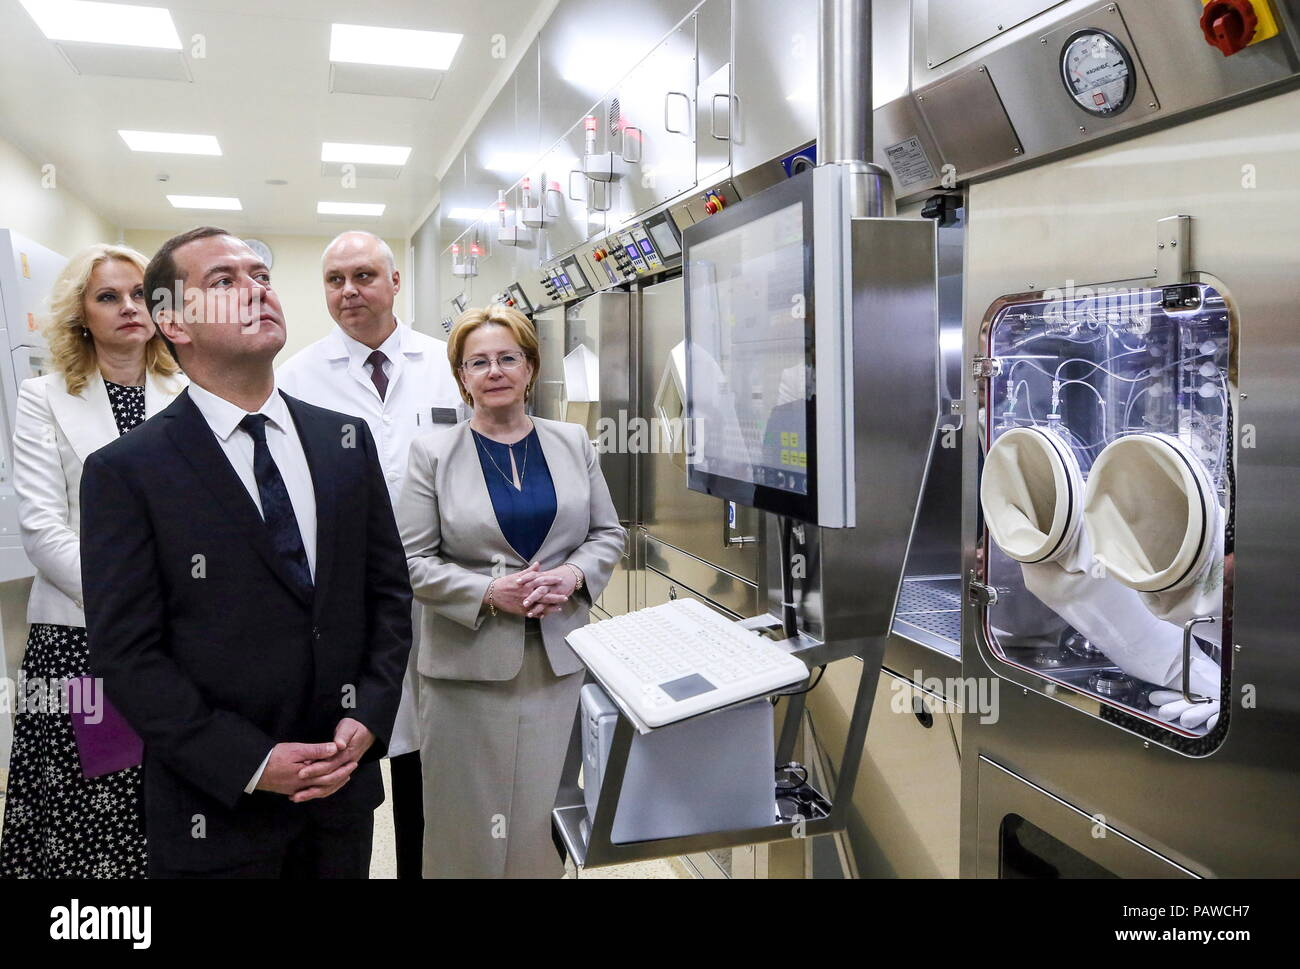 Russia. 25th July, 2018. MOSCOW REGION, RUSSIA - JULY 25, 2018: Russia's Prime Minister Dmitry Medvedev, Healthcare Minister Veronika Skvortsova (L-R front), and Deputy Prime Minister Tatyana Golikova (L back) visit an oncoradiological cancer centre in the city of Balashikha. Yekaterina Shtukina/TASS Credit: ITAR-TASS News Agency/Alamy Live News - Stock Image